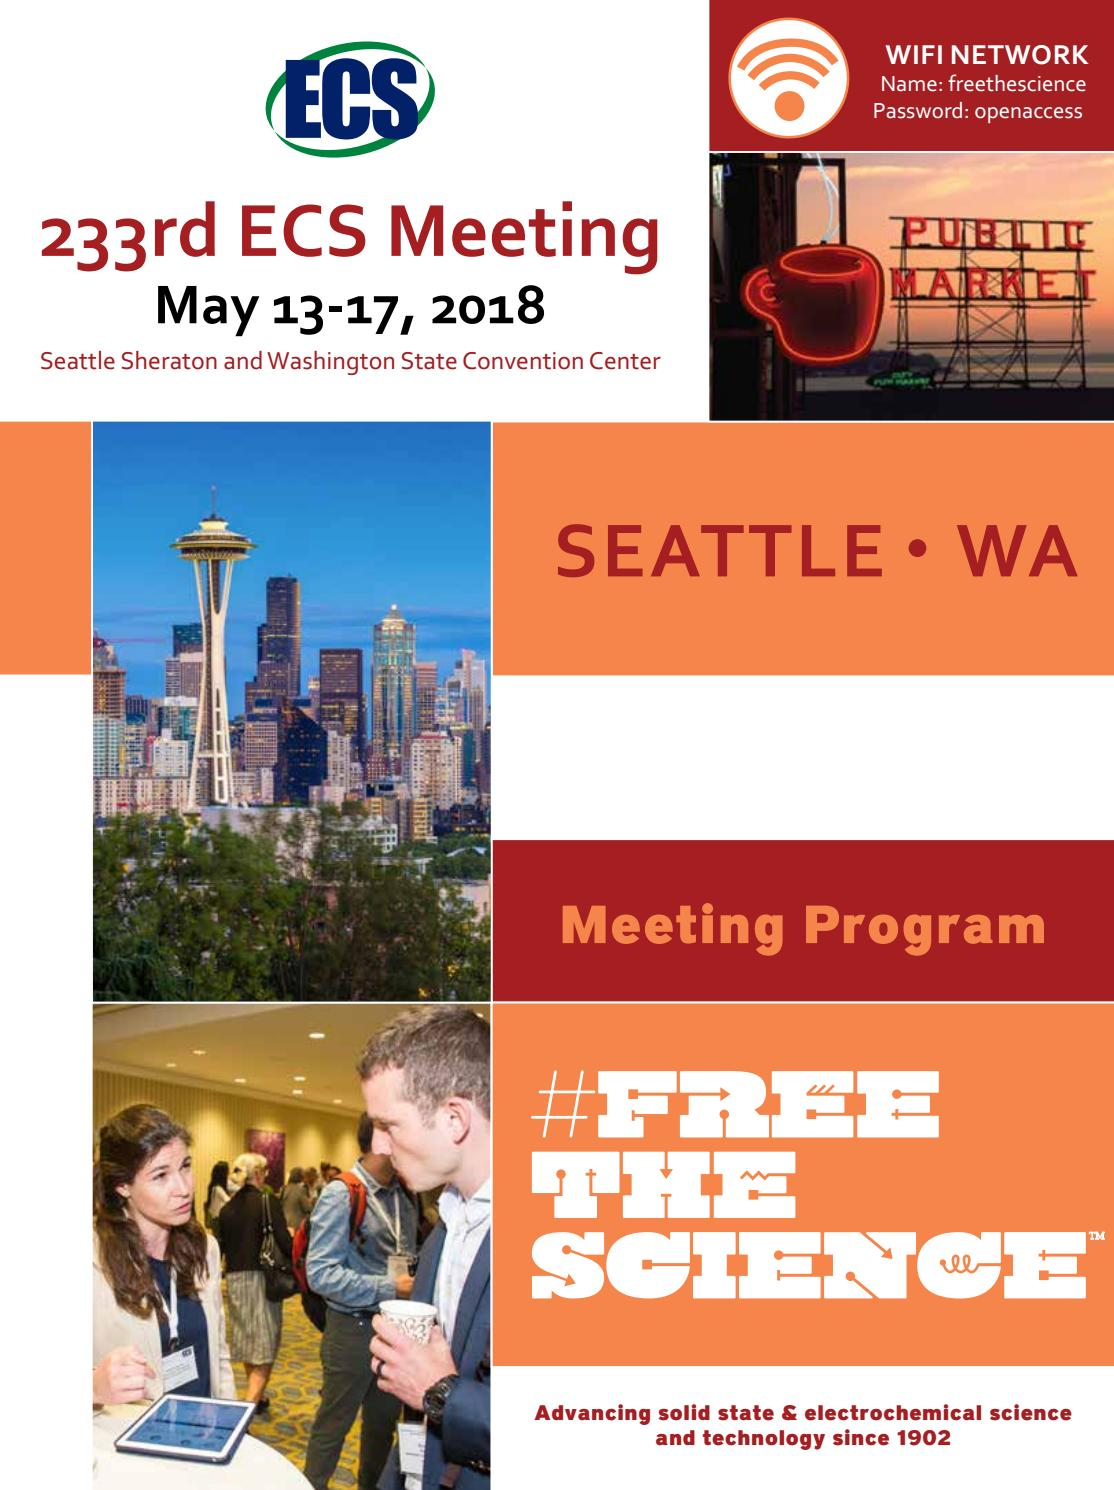 233rd ECS Meeting, Seattle, WA by The Electrochemical